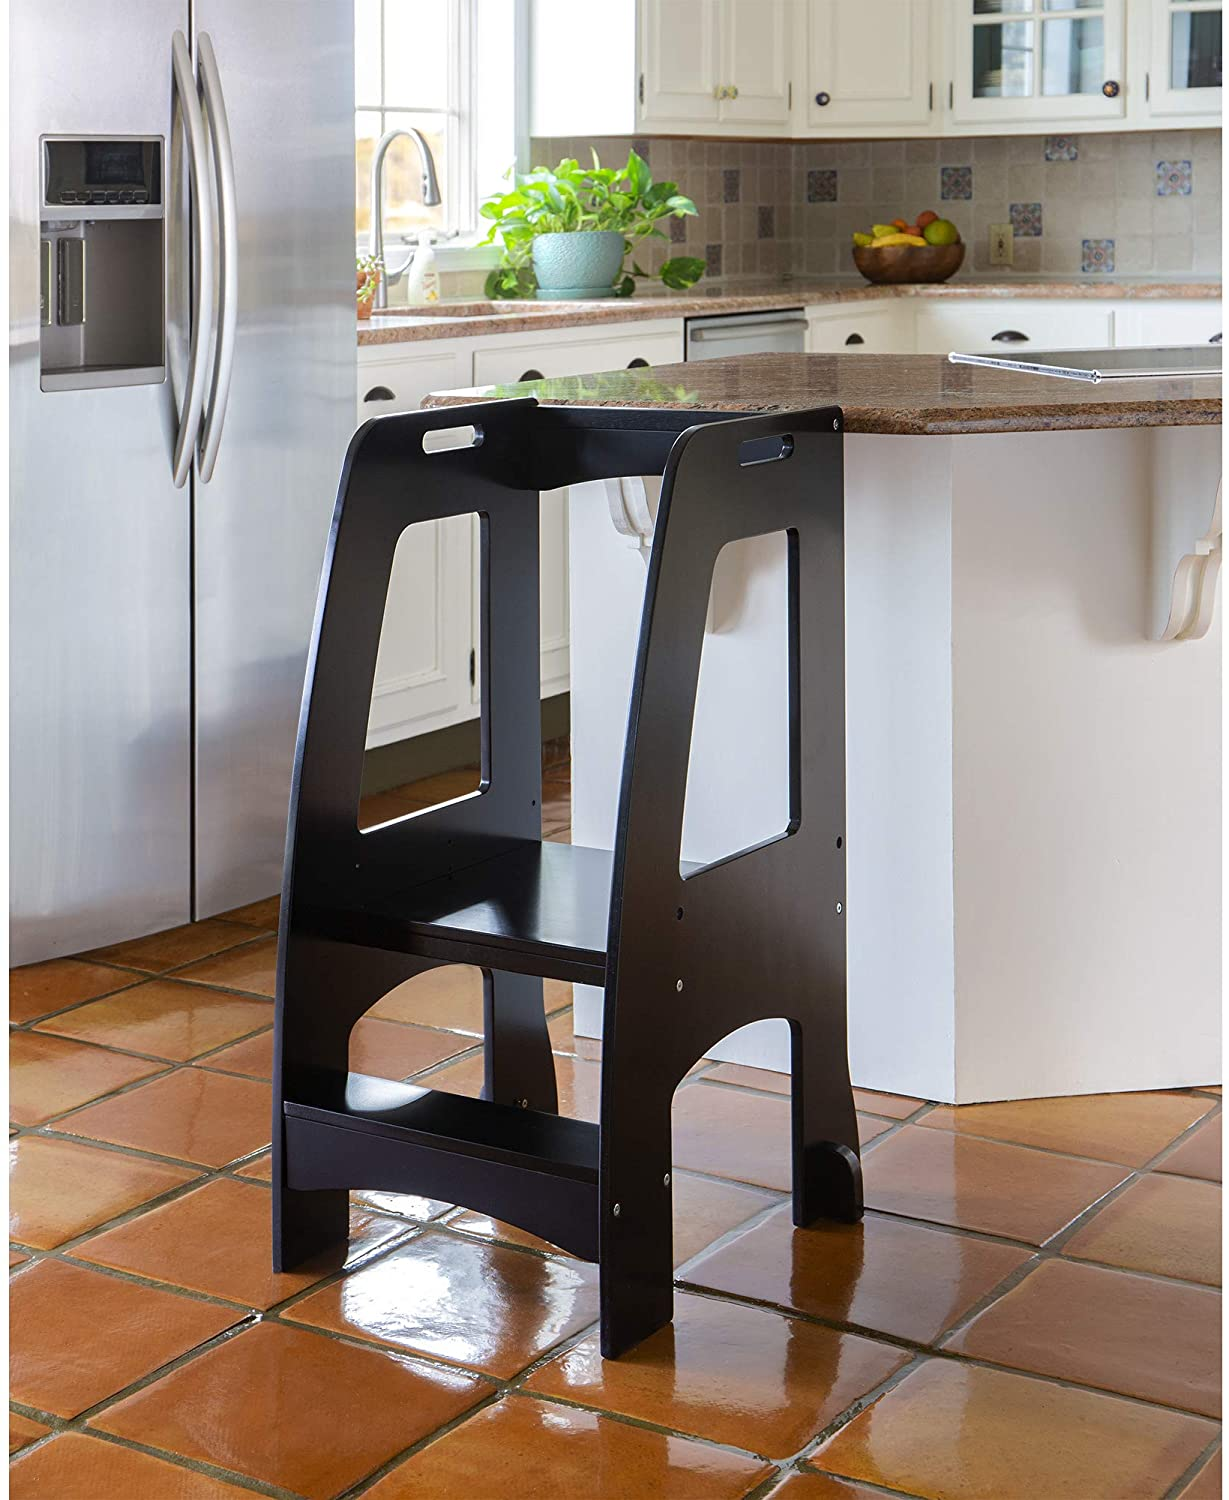 Guidecraft Kitchen Helper Tower Step-Up - Black: Wooden, Adjustable Counter Height, Learning Step Stool with Safety Rails for Little Children, Kids' Furniture